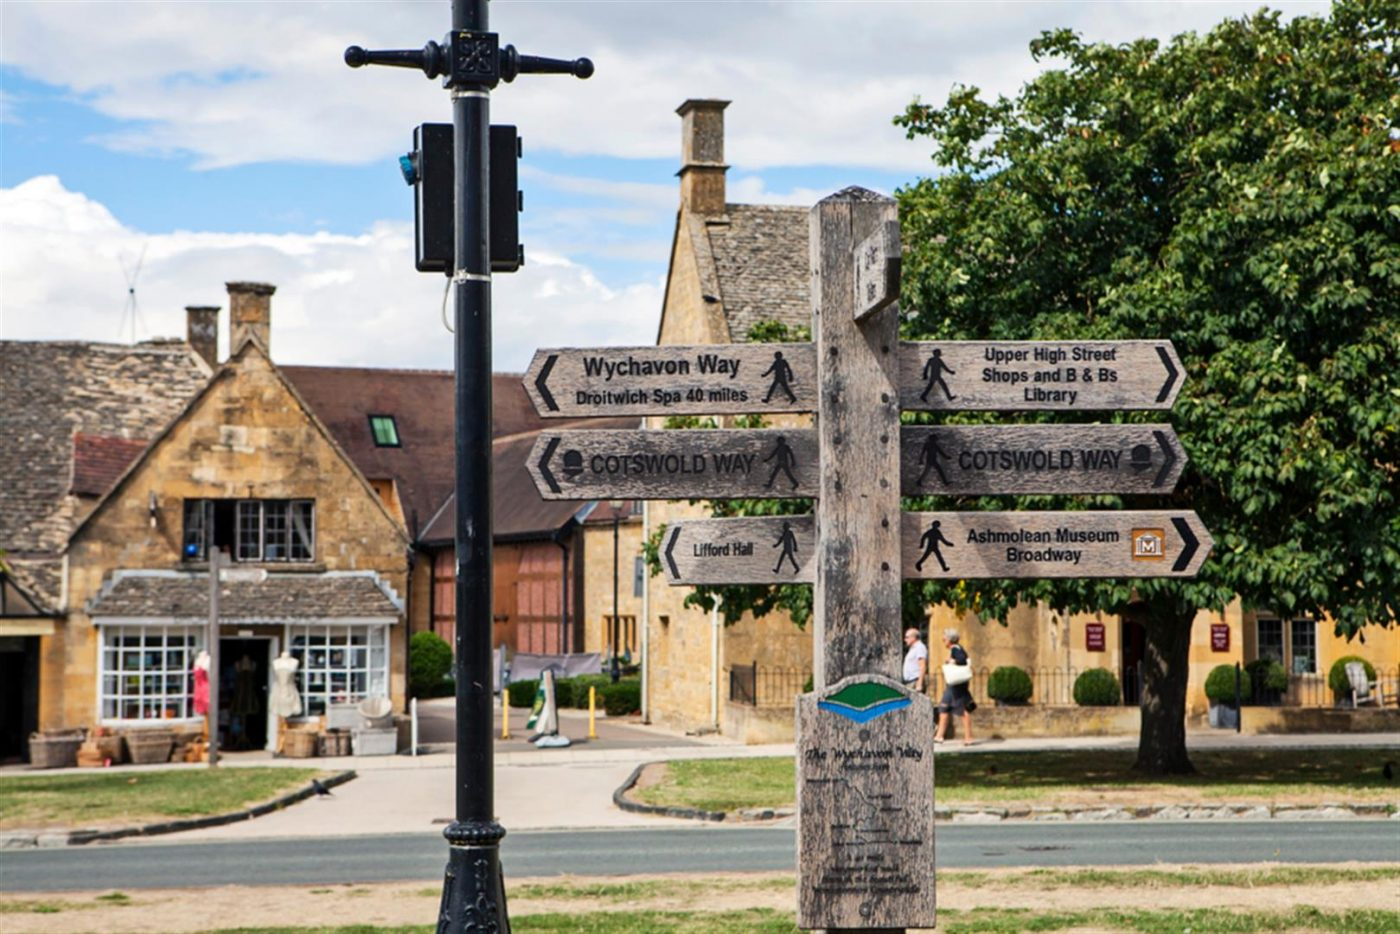 Town of Broadway in the Cotswold